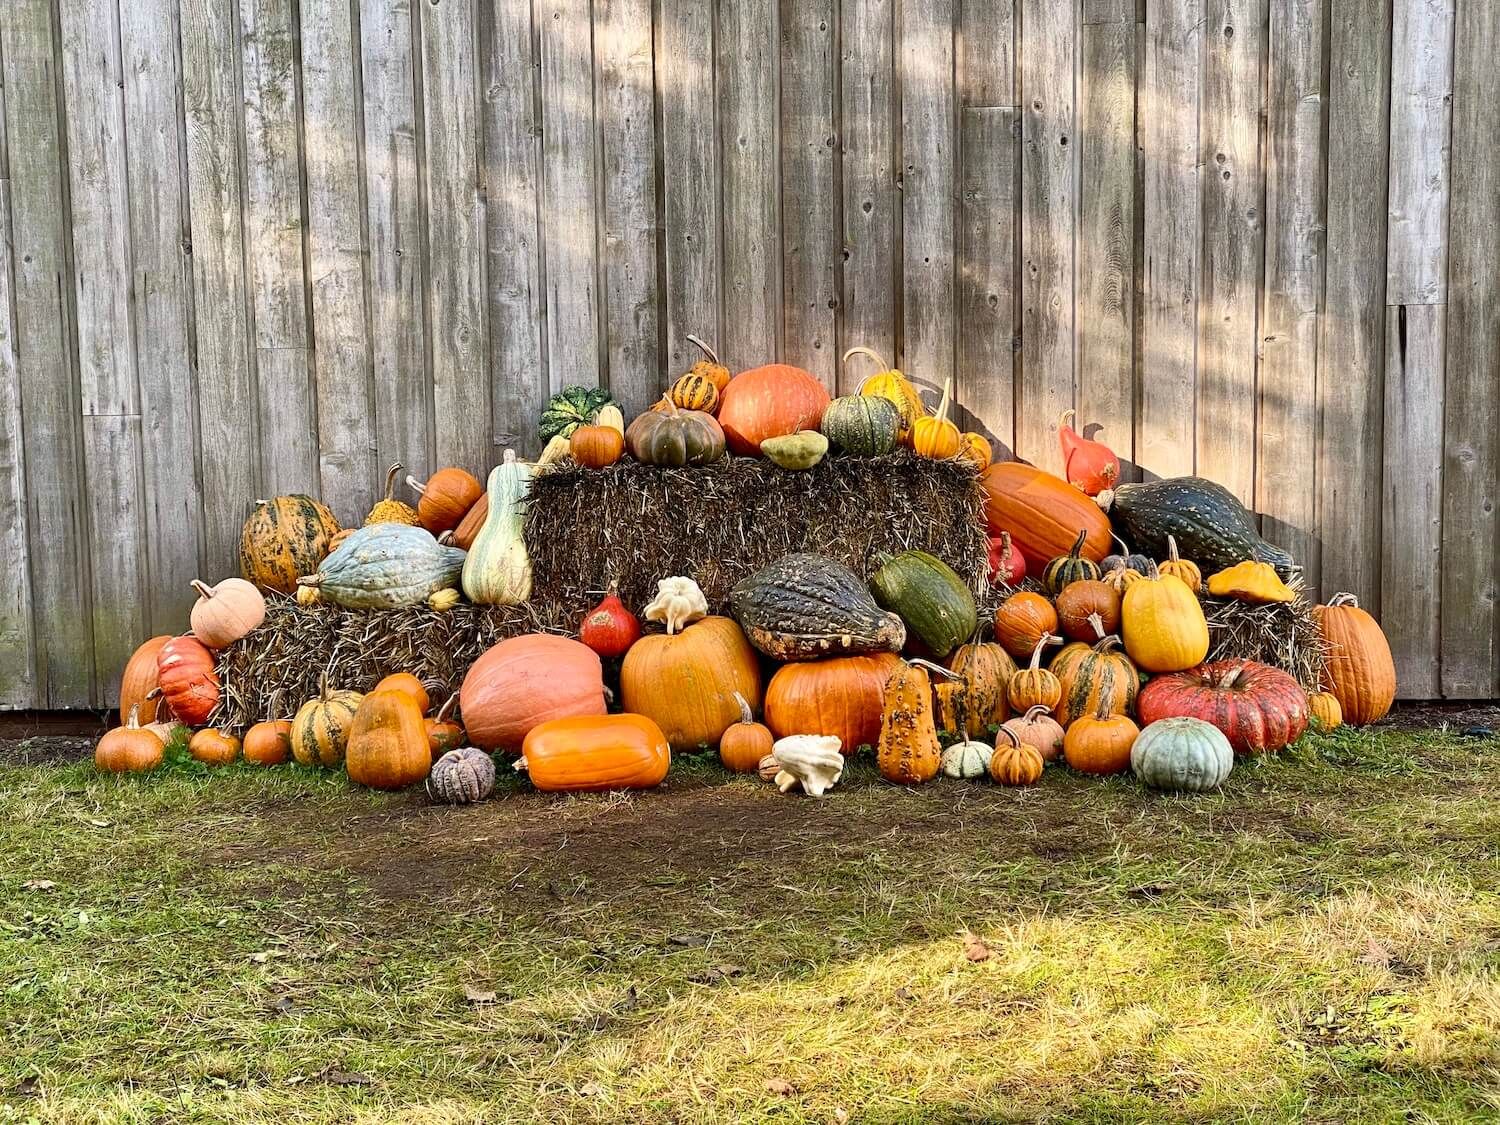 An array of harvest gourds are piled up on some straw bales against a gray wood barn.